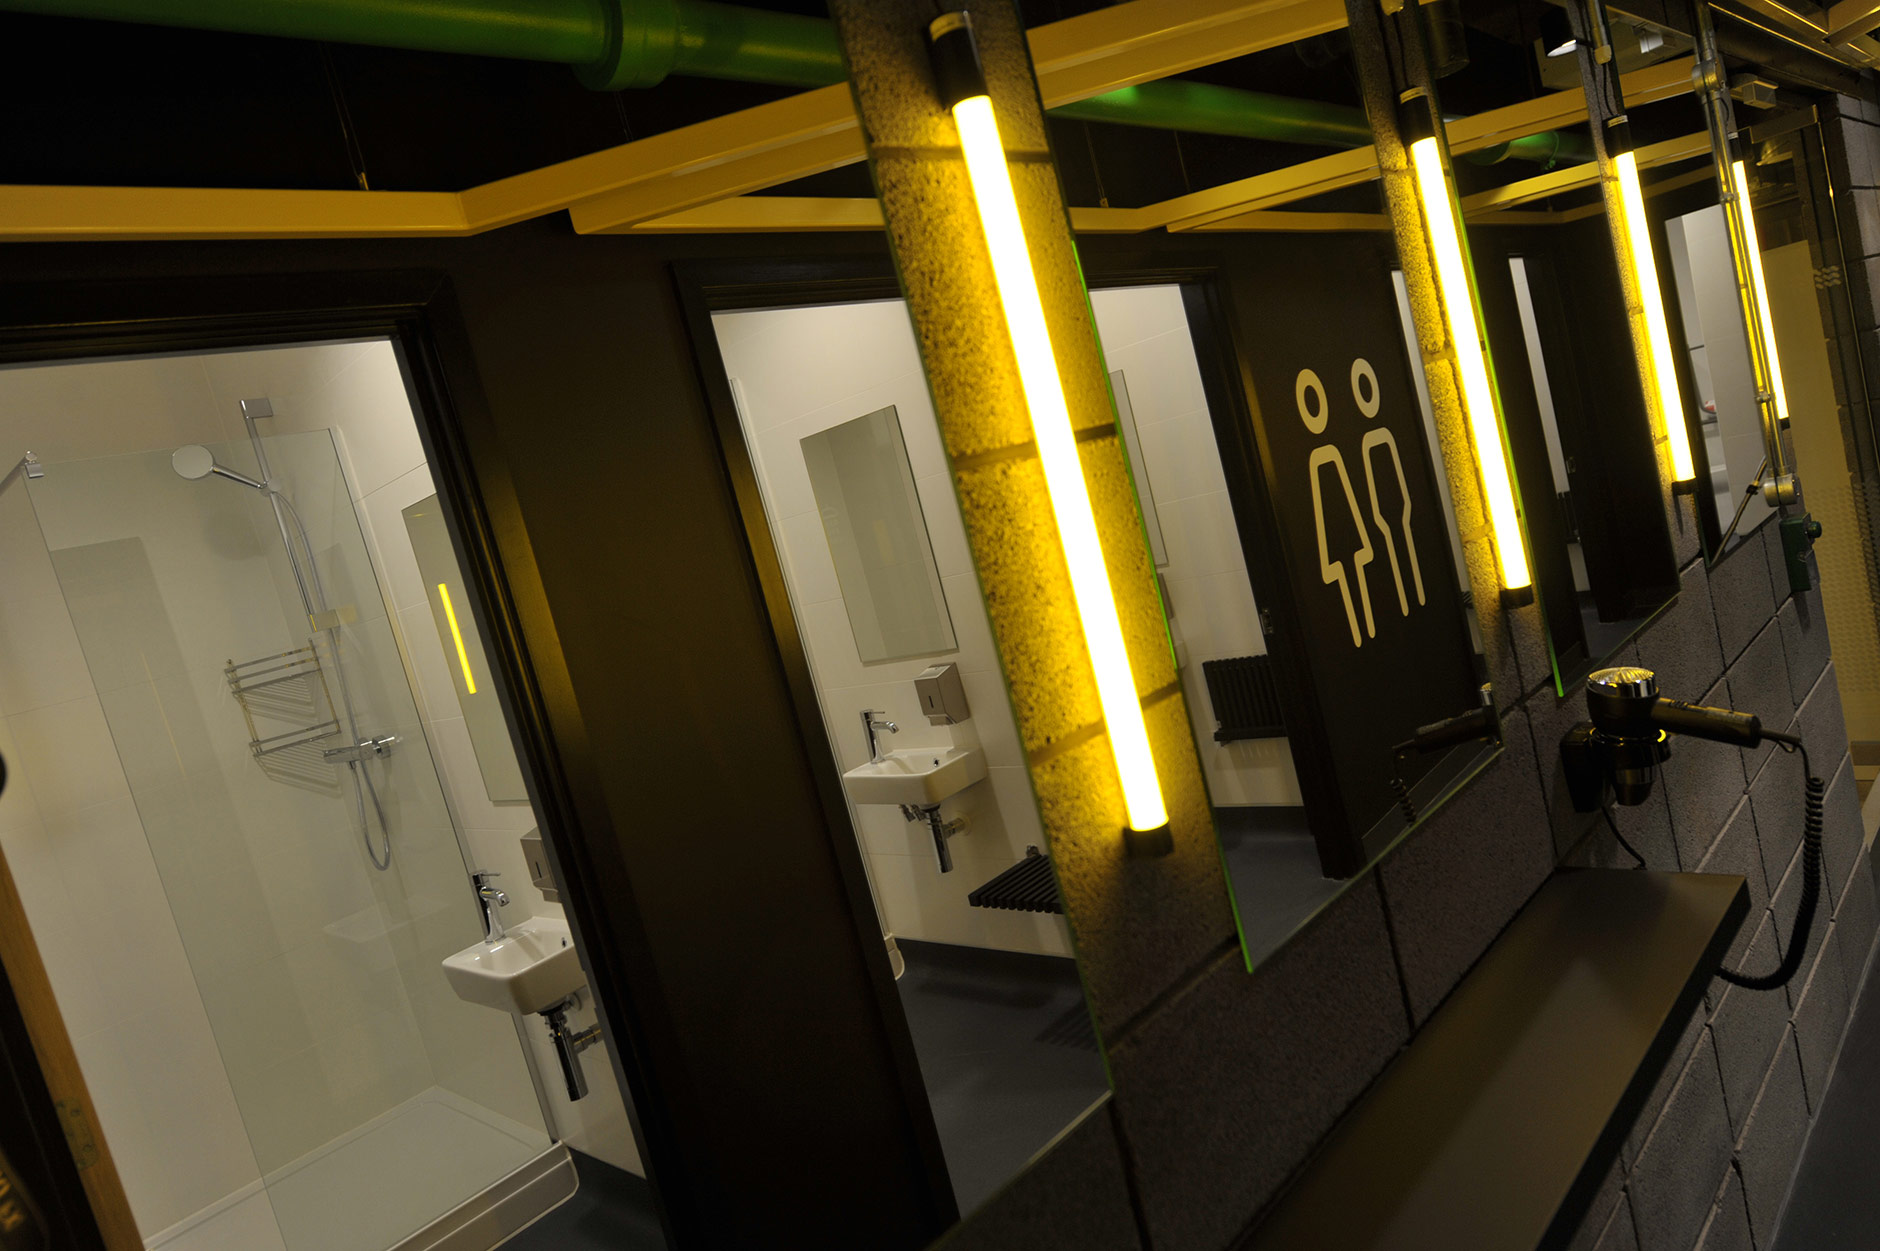 an image of the toilets at One Portland Street